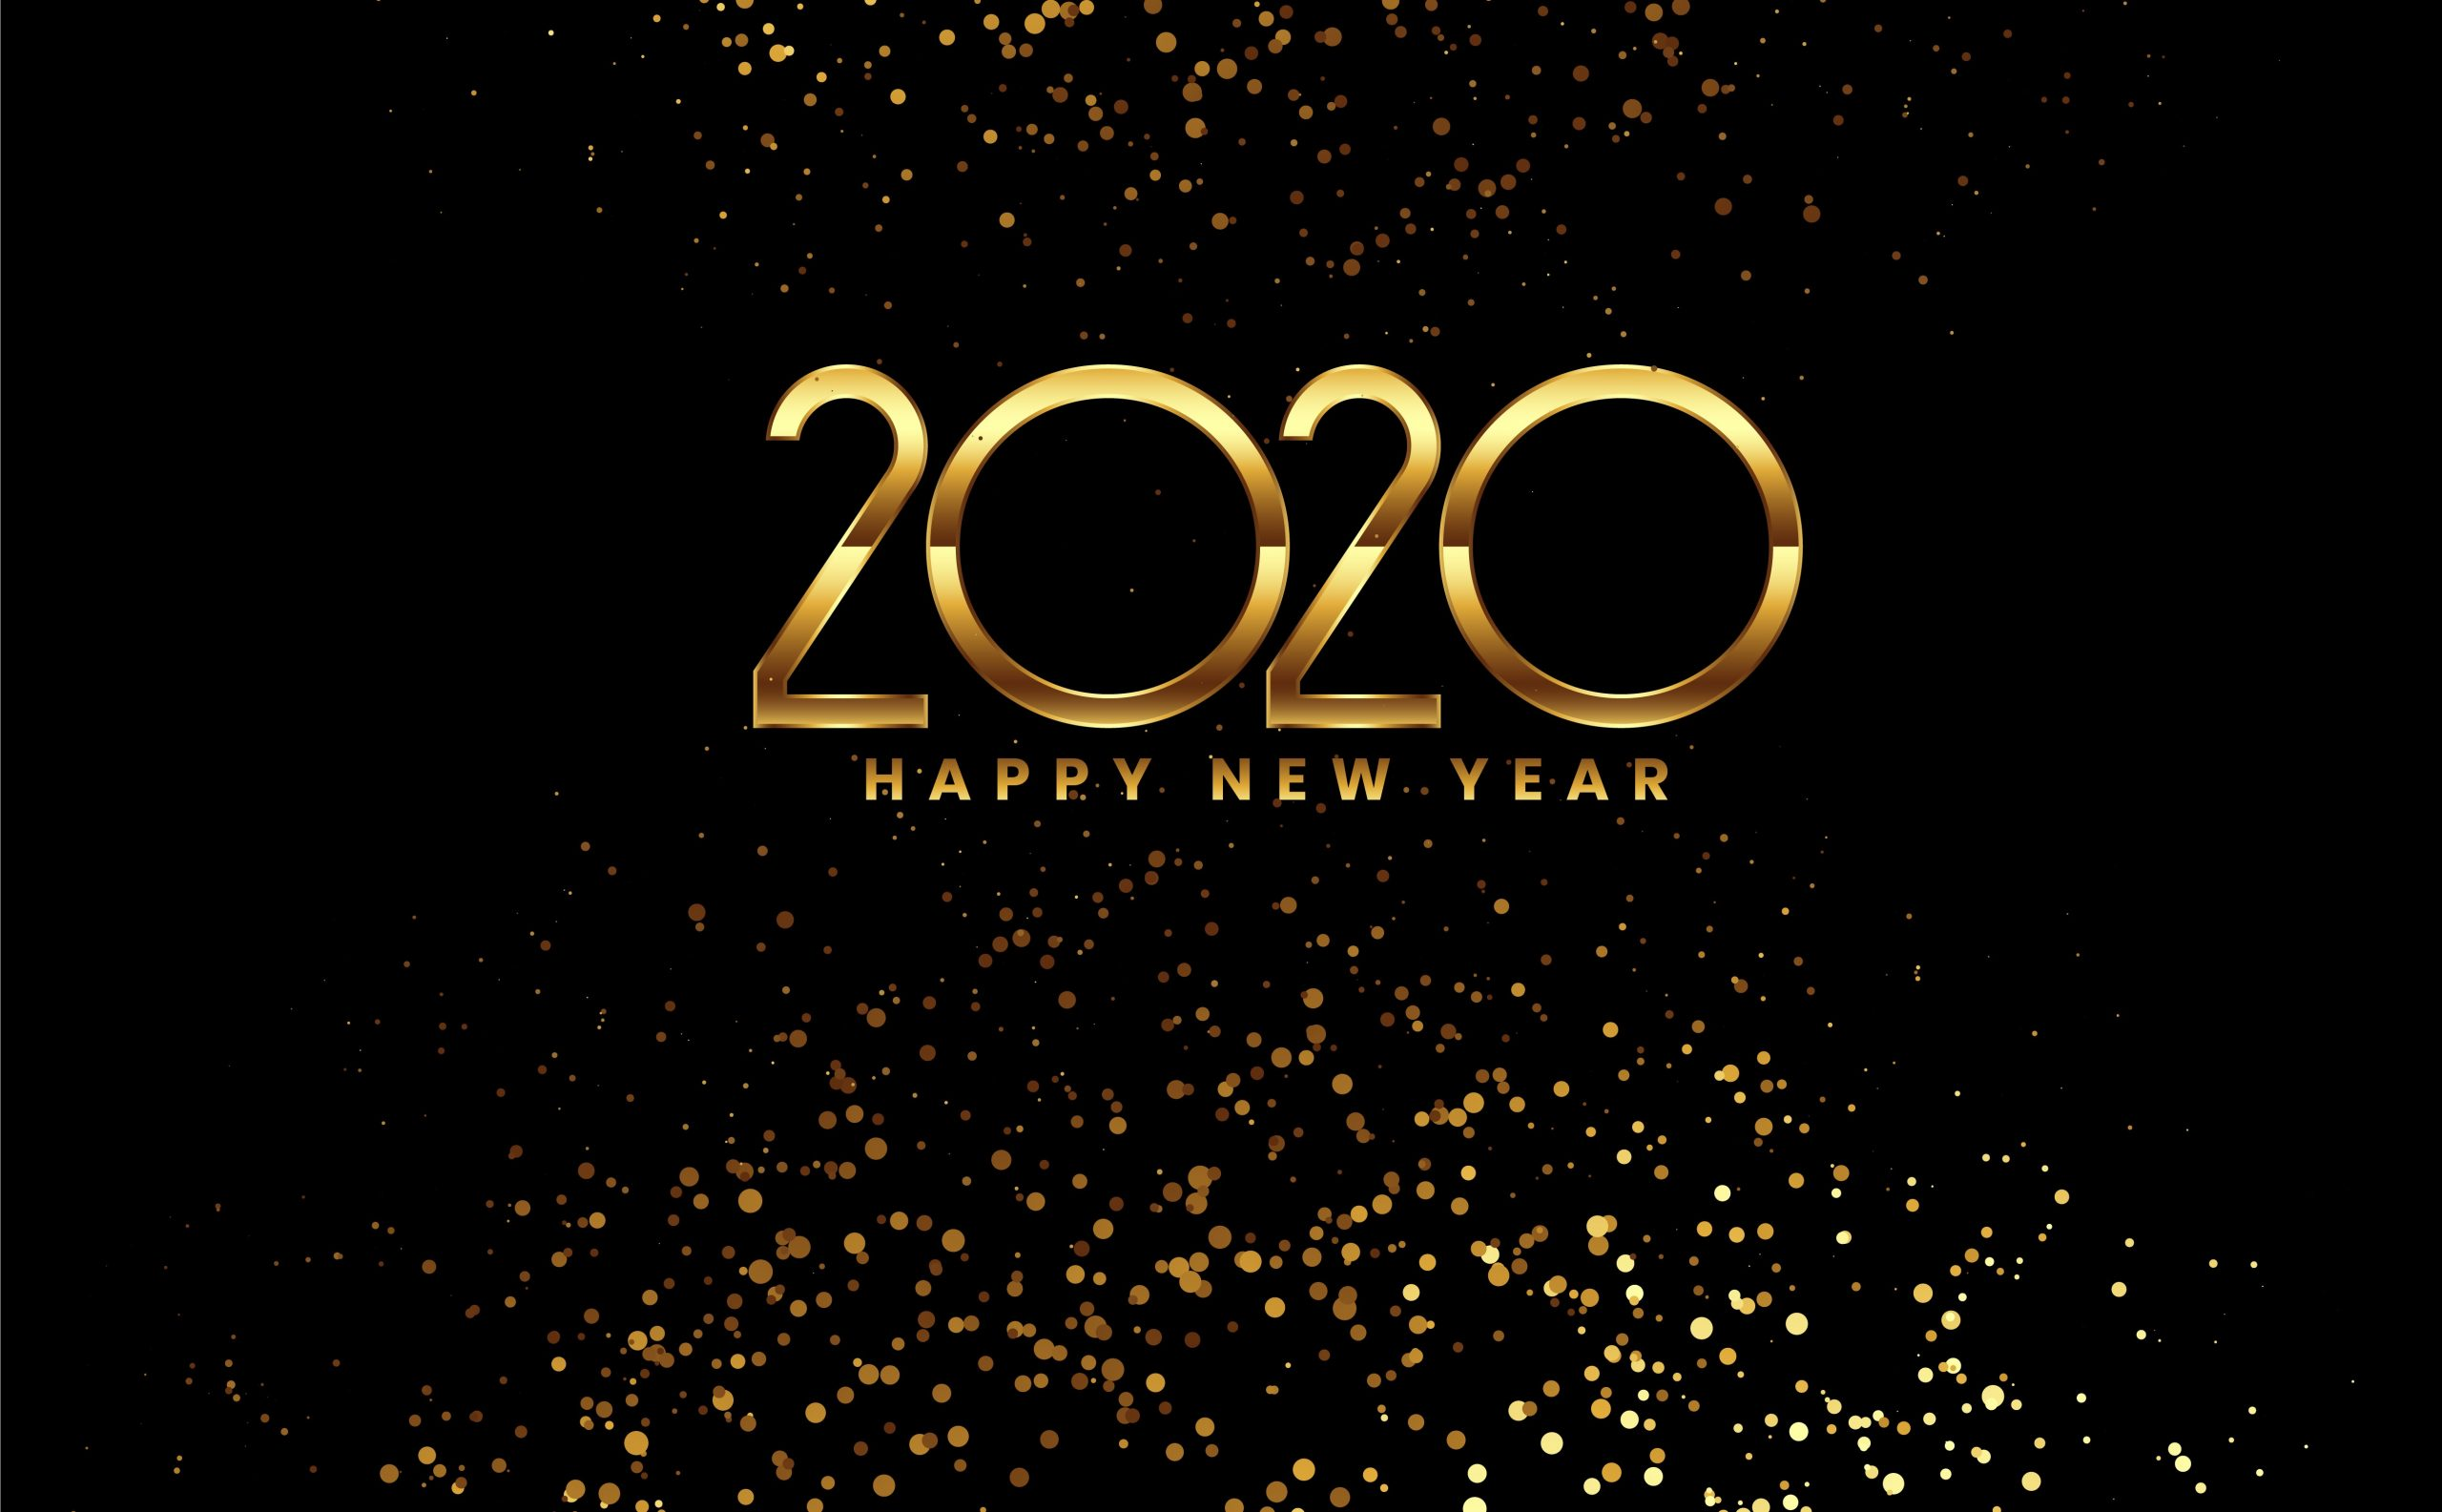 Happy New Year 2020 Celebration Background With Golden Confetti